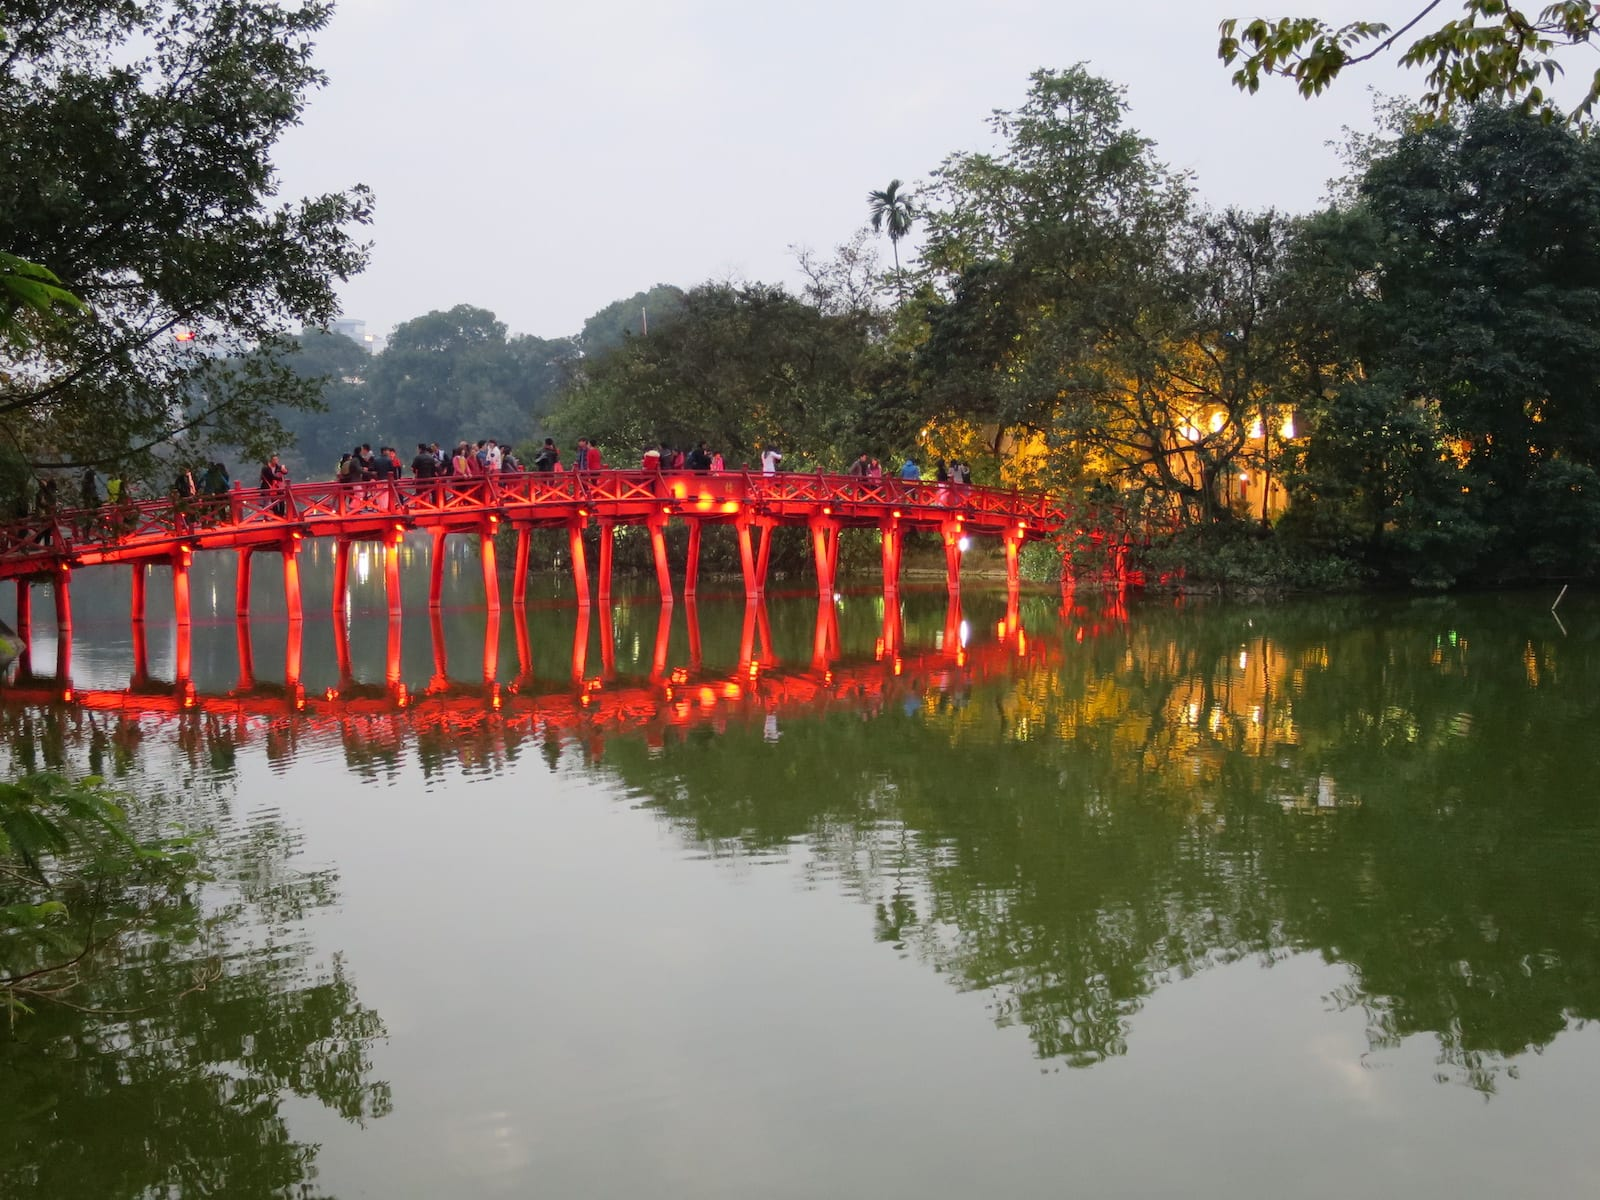 The Huc Bridge in December, Ha Noi